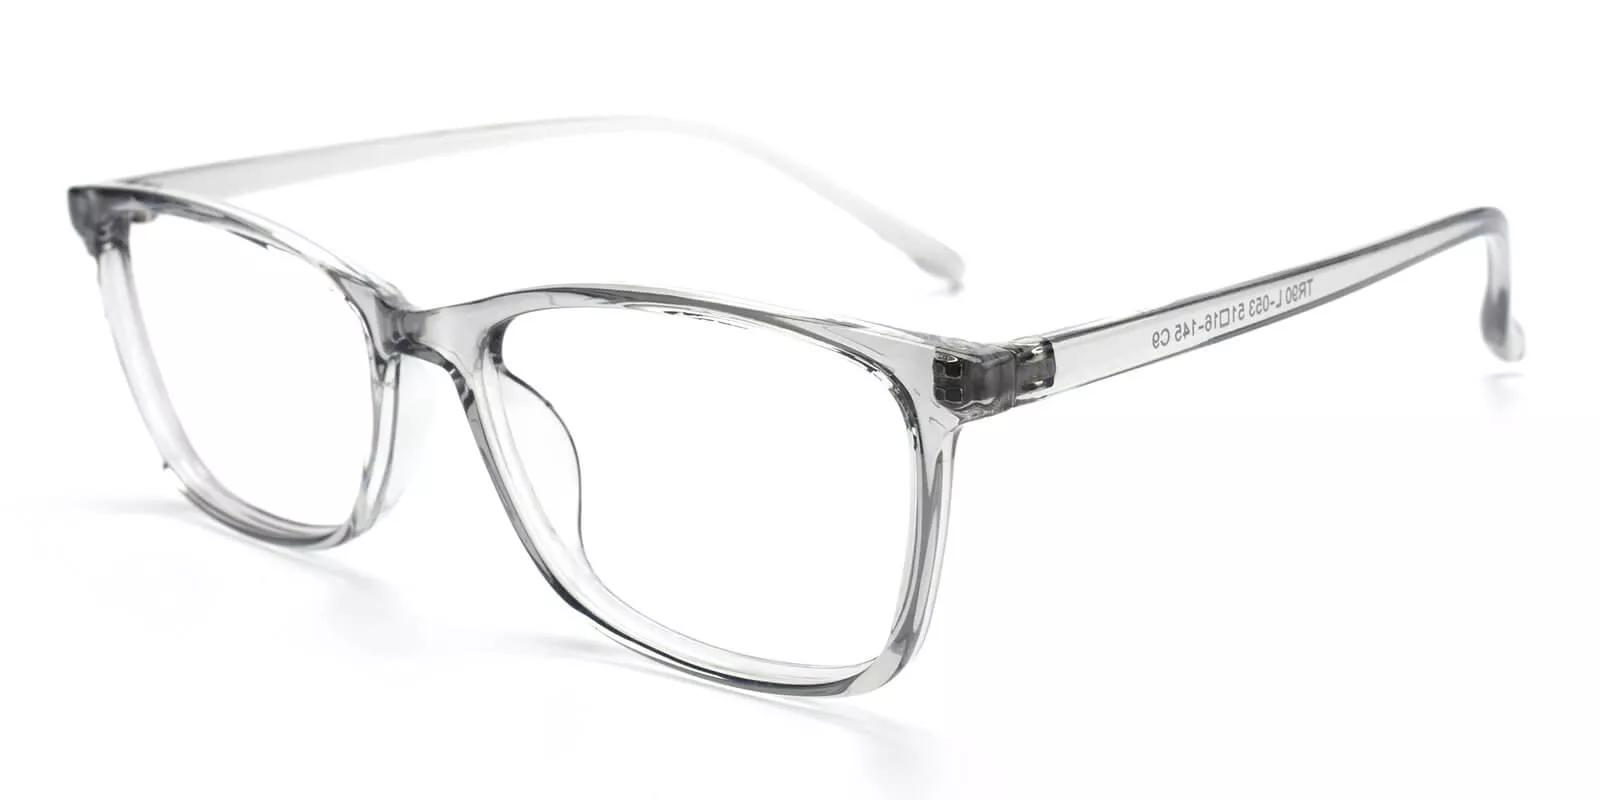 Davenport Light Weight Eyeglasses Gray Clear